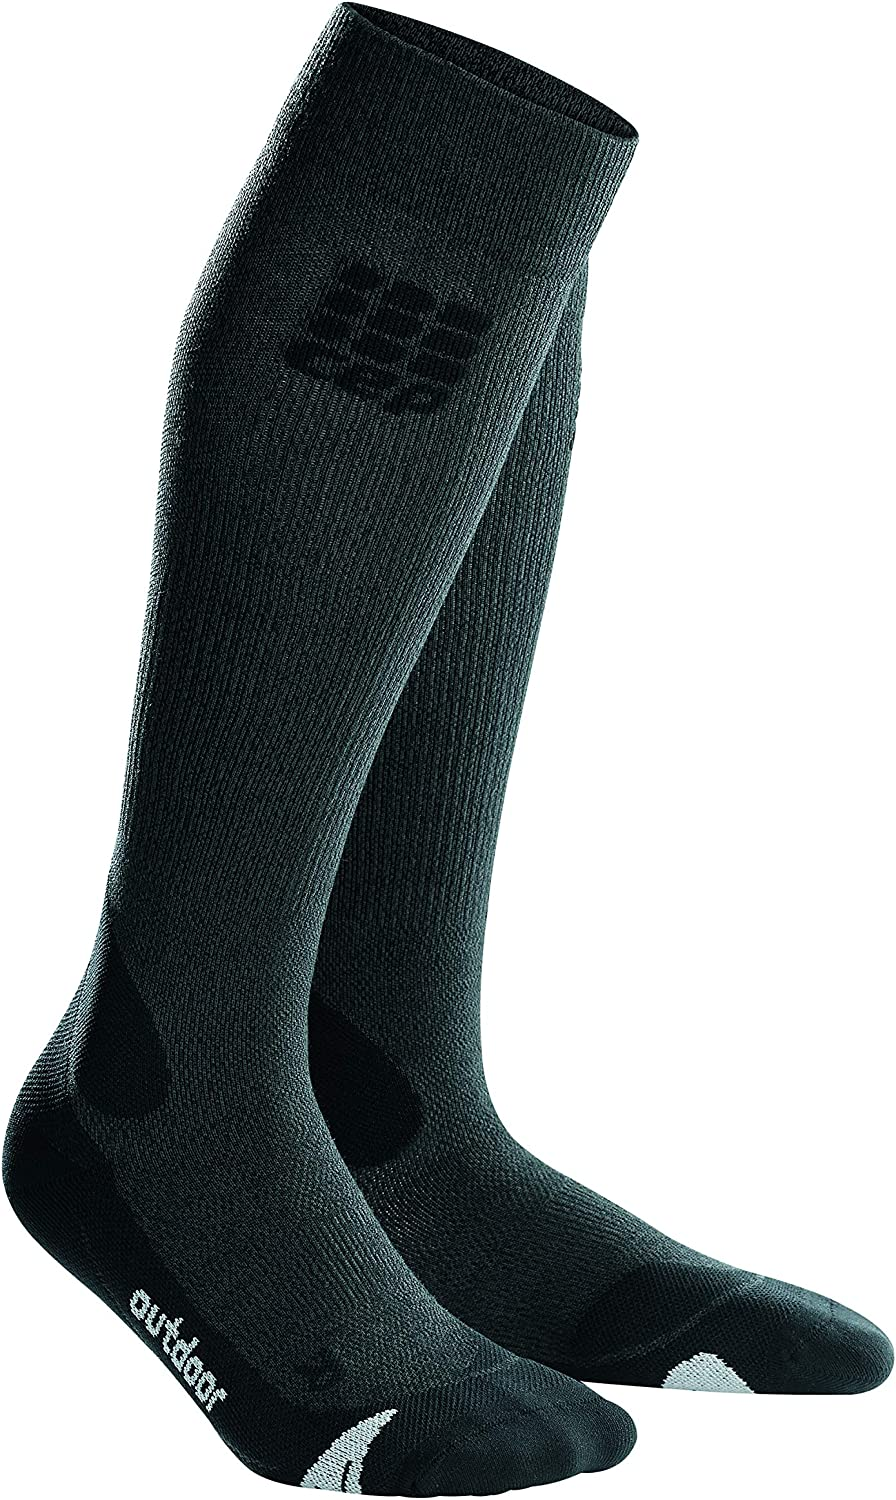 CEP Women's Long Compression Wool Socks Outdoor Merino for Hiking